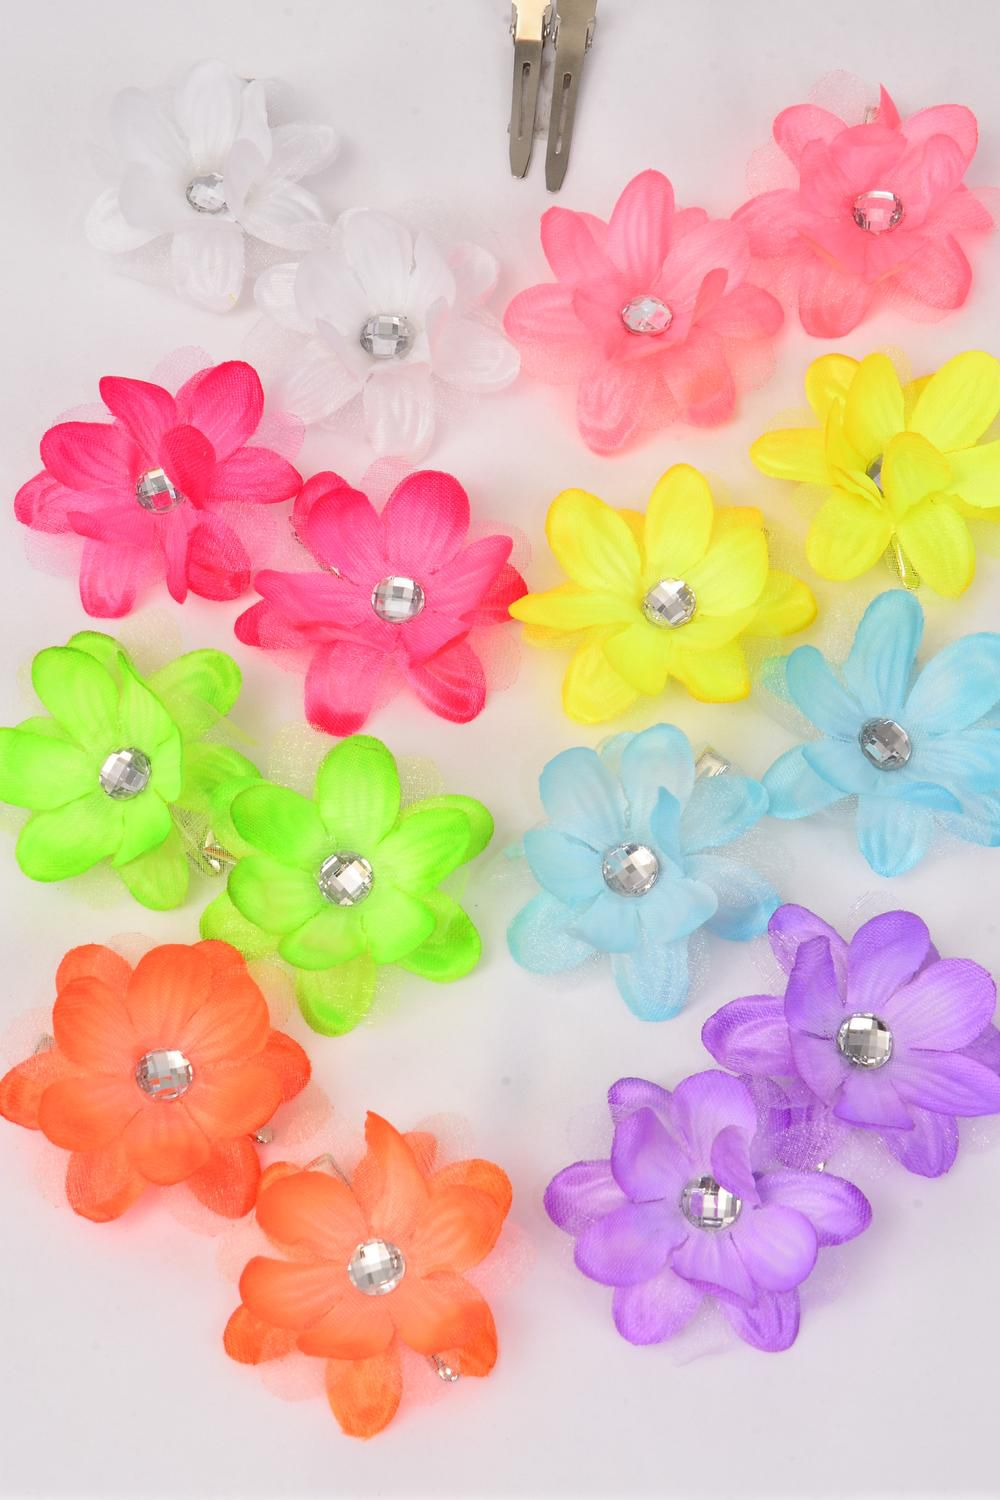 "Flowers 24 pcs Alligator Clip 3 Layered Flowers Neon Color Mix/DZ **Caribbean Neon** Flower Size-2.5"" Wide,2 Pink,2 Blue,2 Purple,2 White,1 Orange,1 Lime,1 Yellow,1 Coral,8 Color Asst"